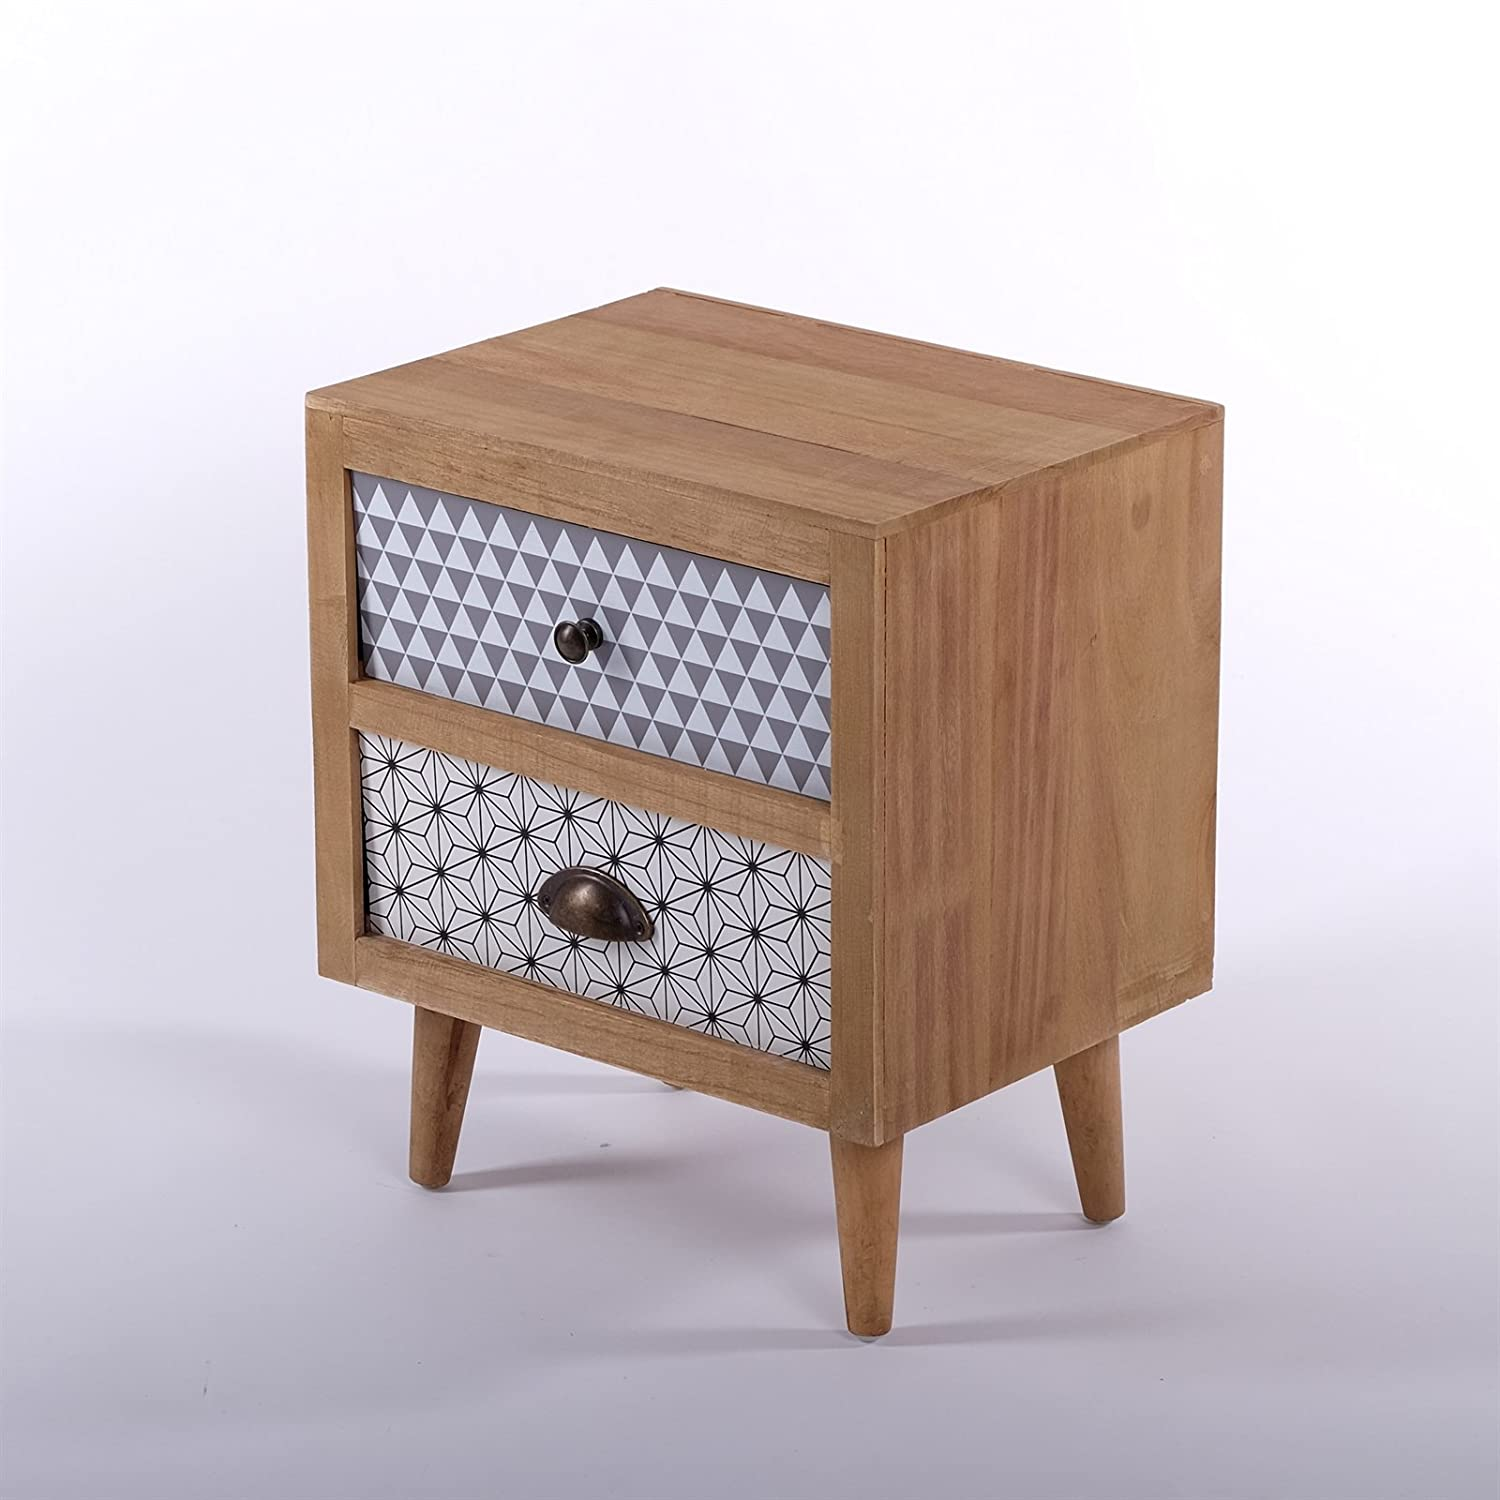 DESIGN DELIGHTS BEDSIDE TABLE RETRO | 19x16, 2 drawers | chest drawers, night stand xtradefactory GmbH